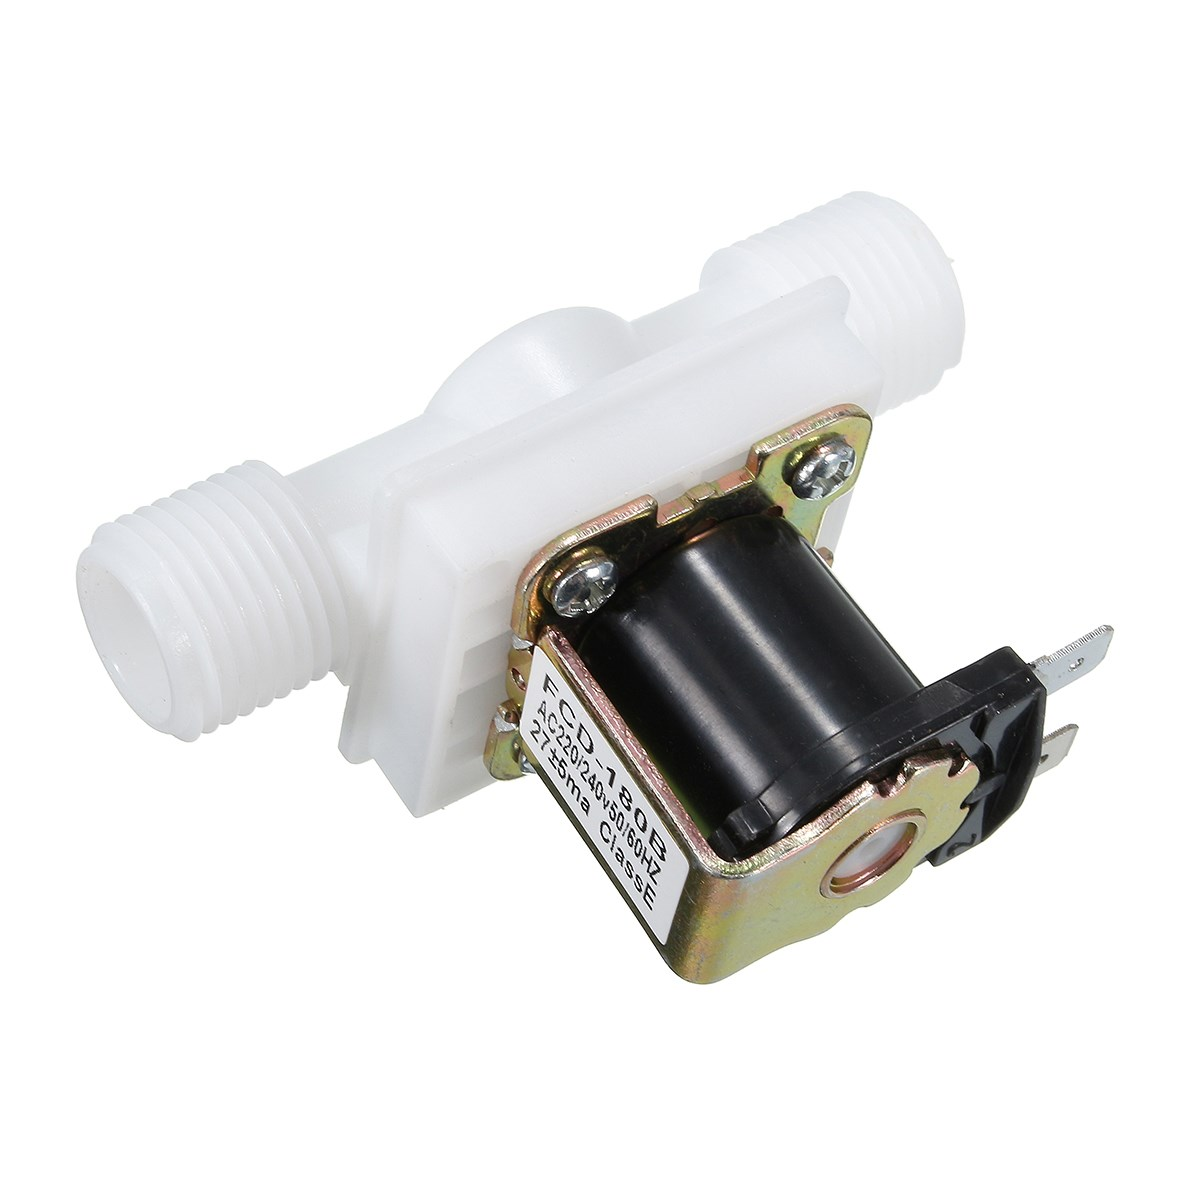 New Best Price 1Pcs AC220V Electric Solenoid Valve Magnetic N/C Water Air Inlet Flow Switch N/C 1/2